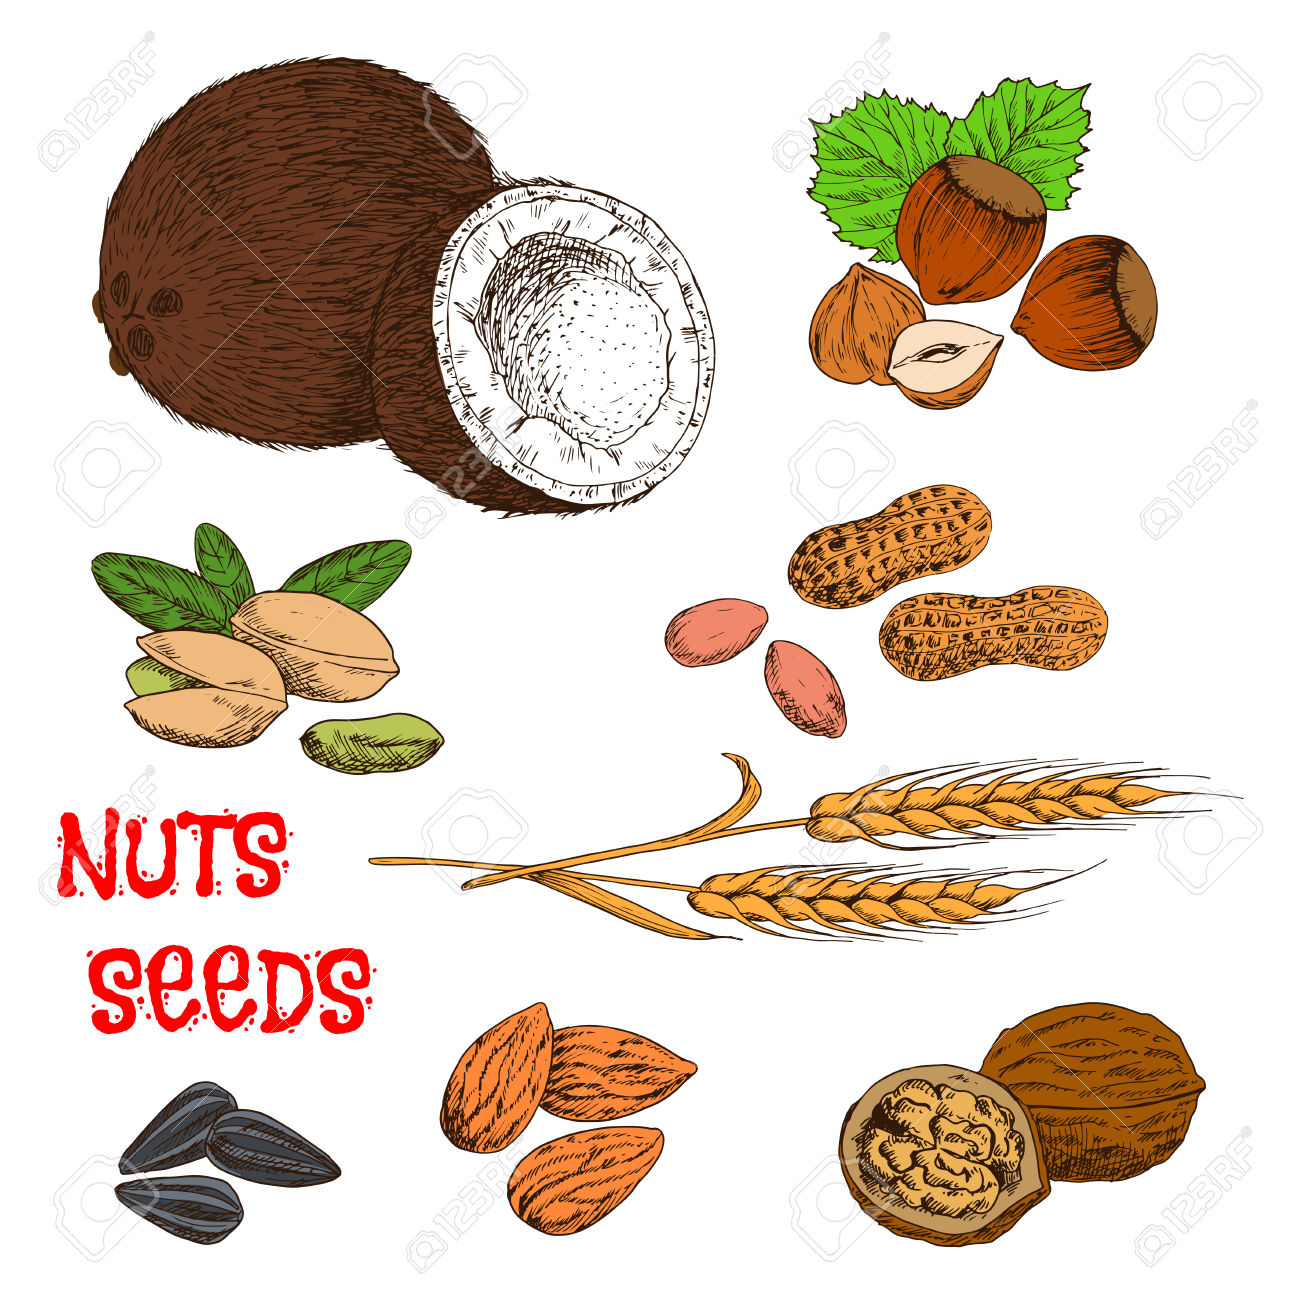 Nutritious Raw And Dried Walnuts, Almonds, Peanuts, Pistachios.